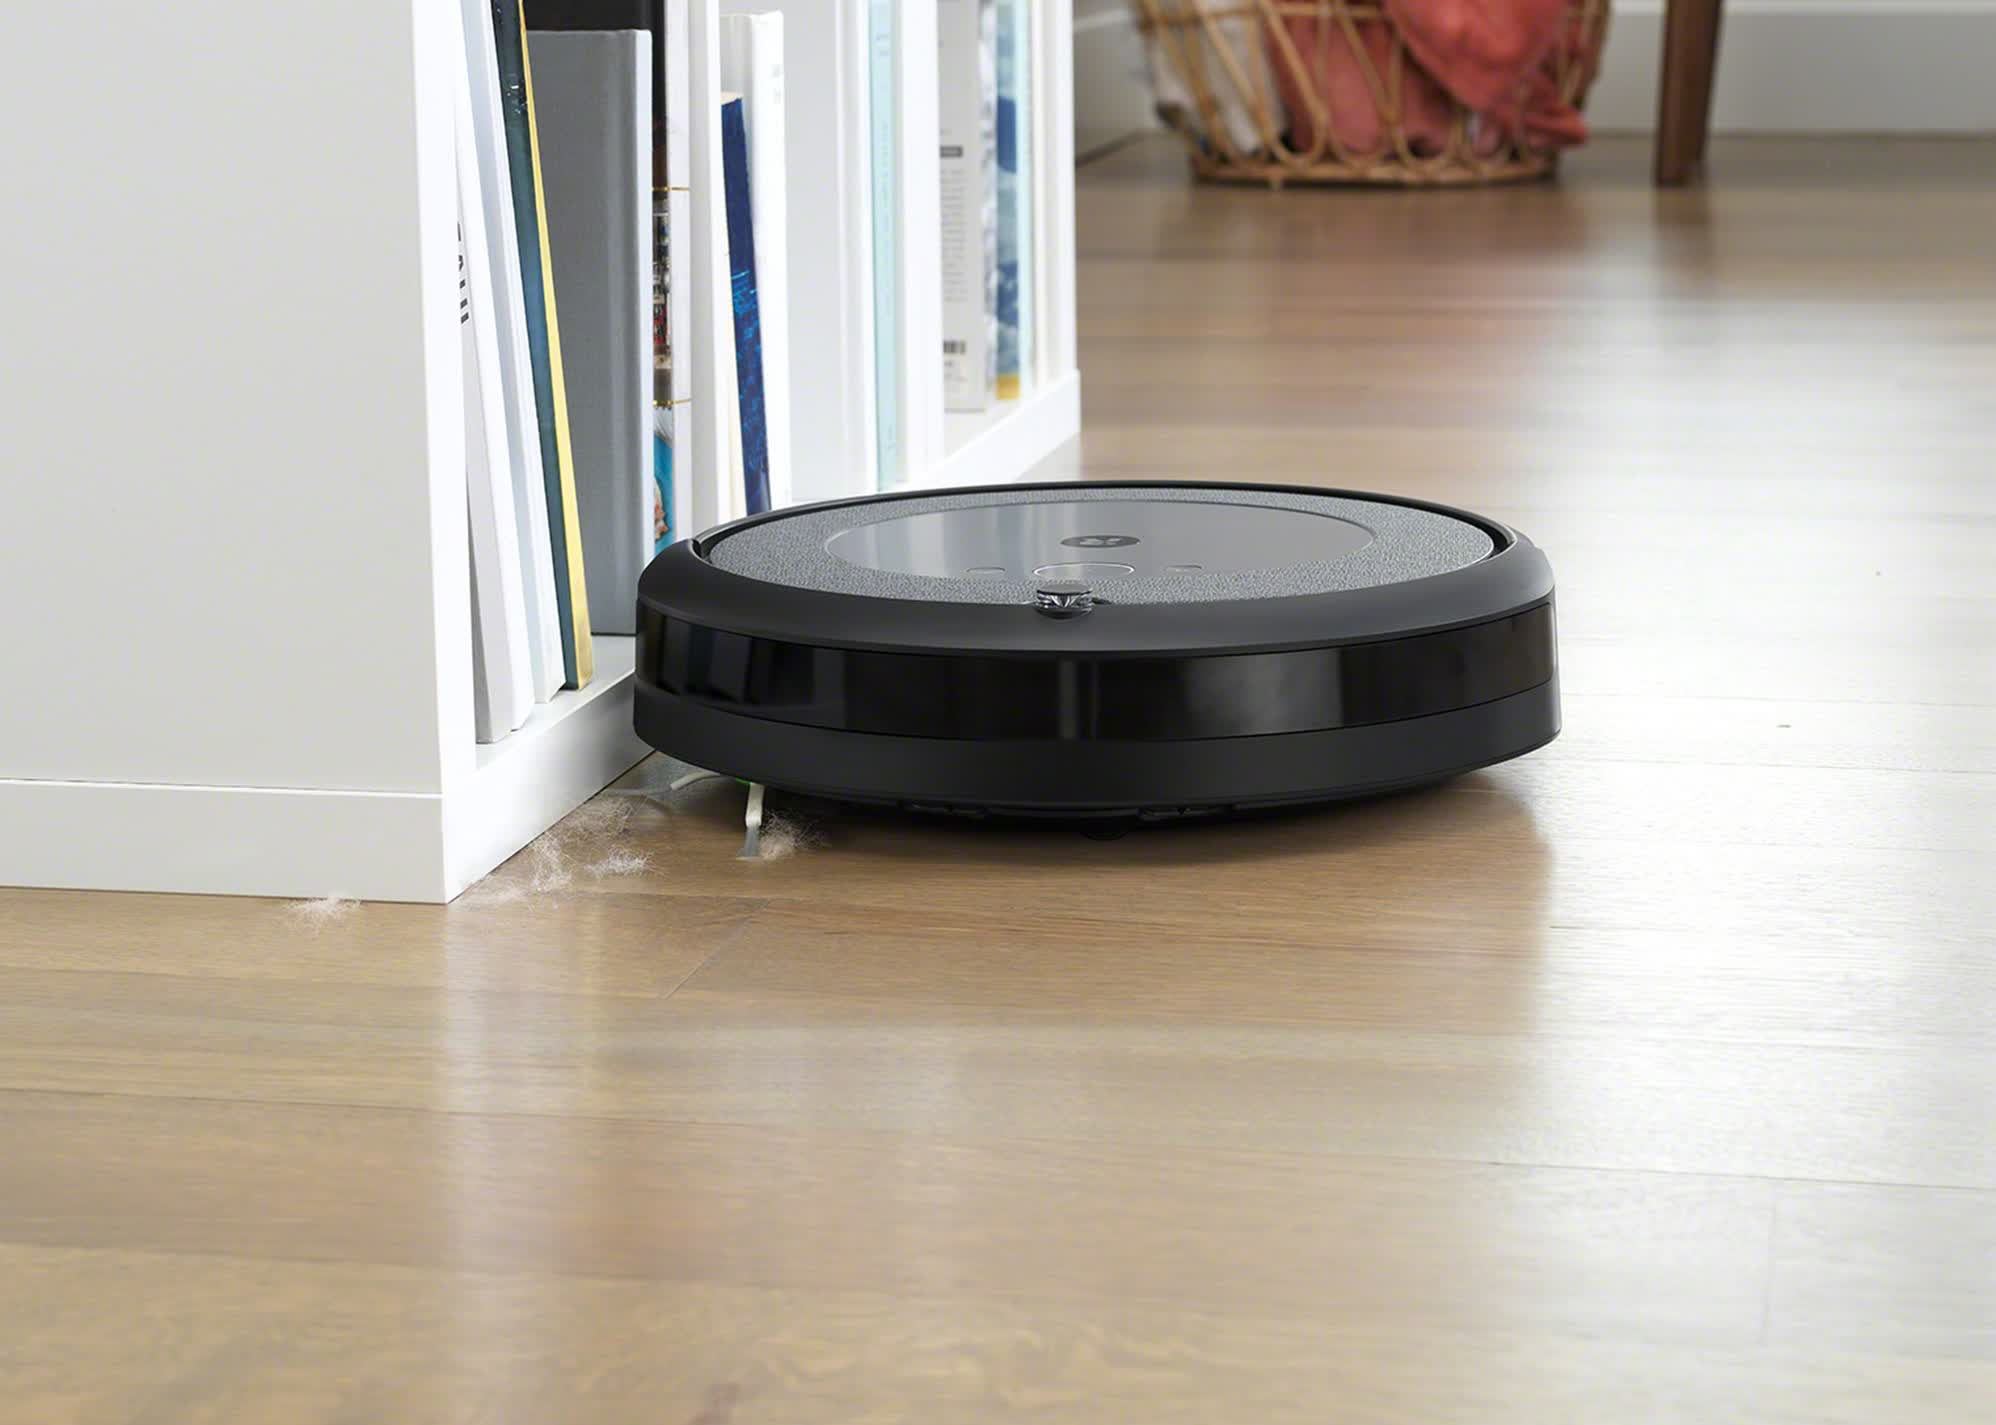 iRobot's new Roomba i3+ features automatic dirt emptying